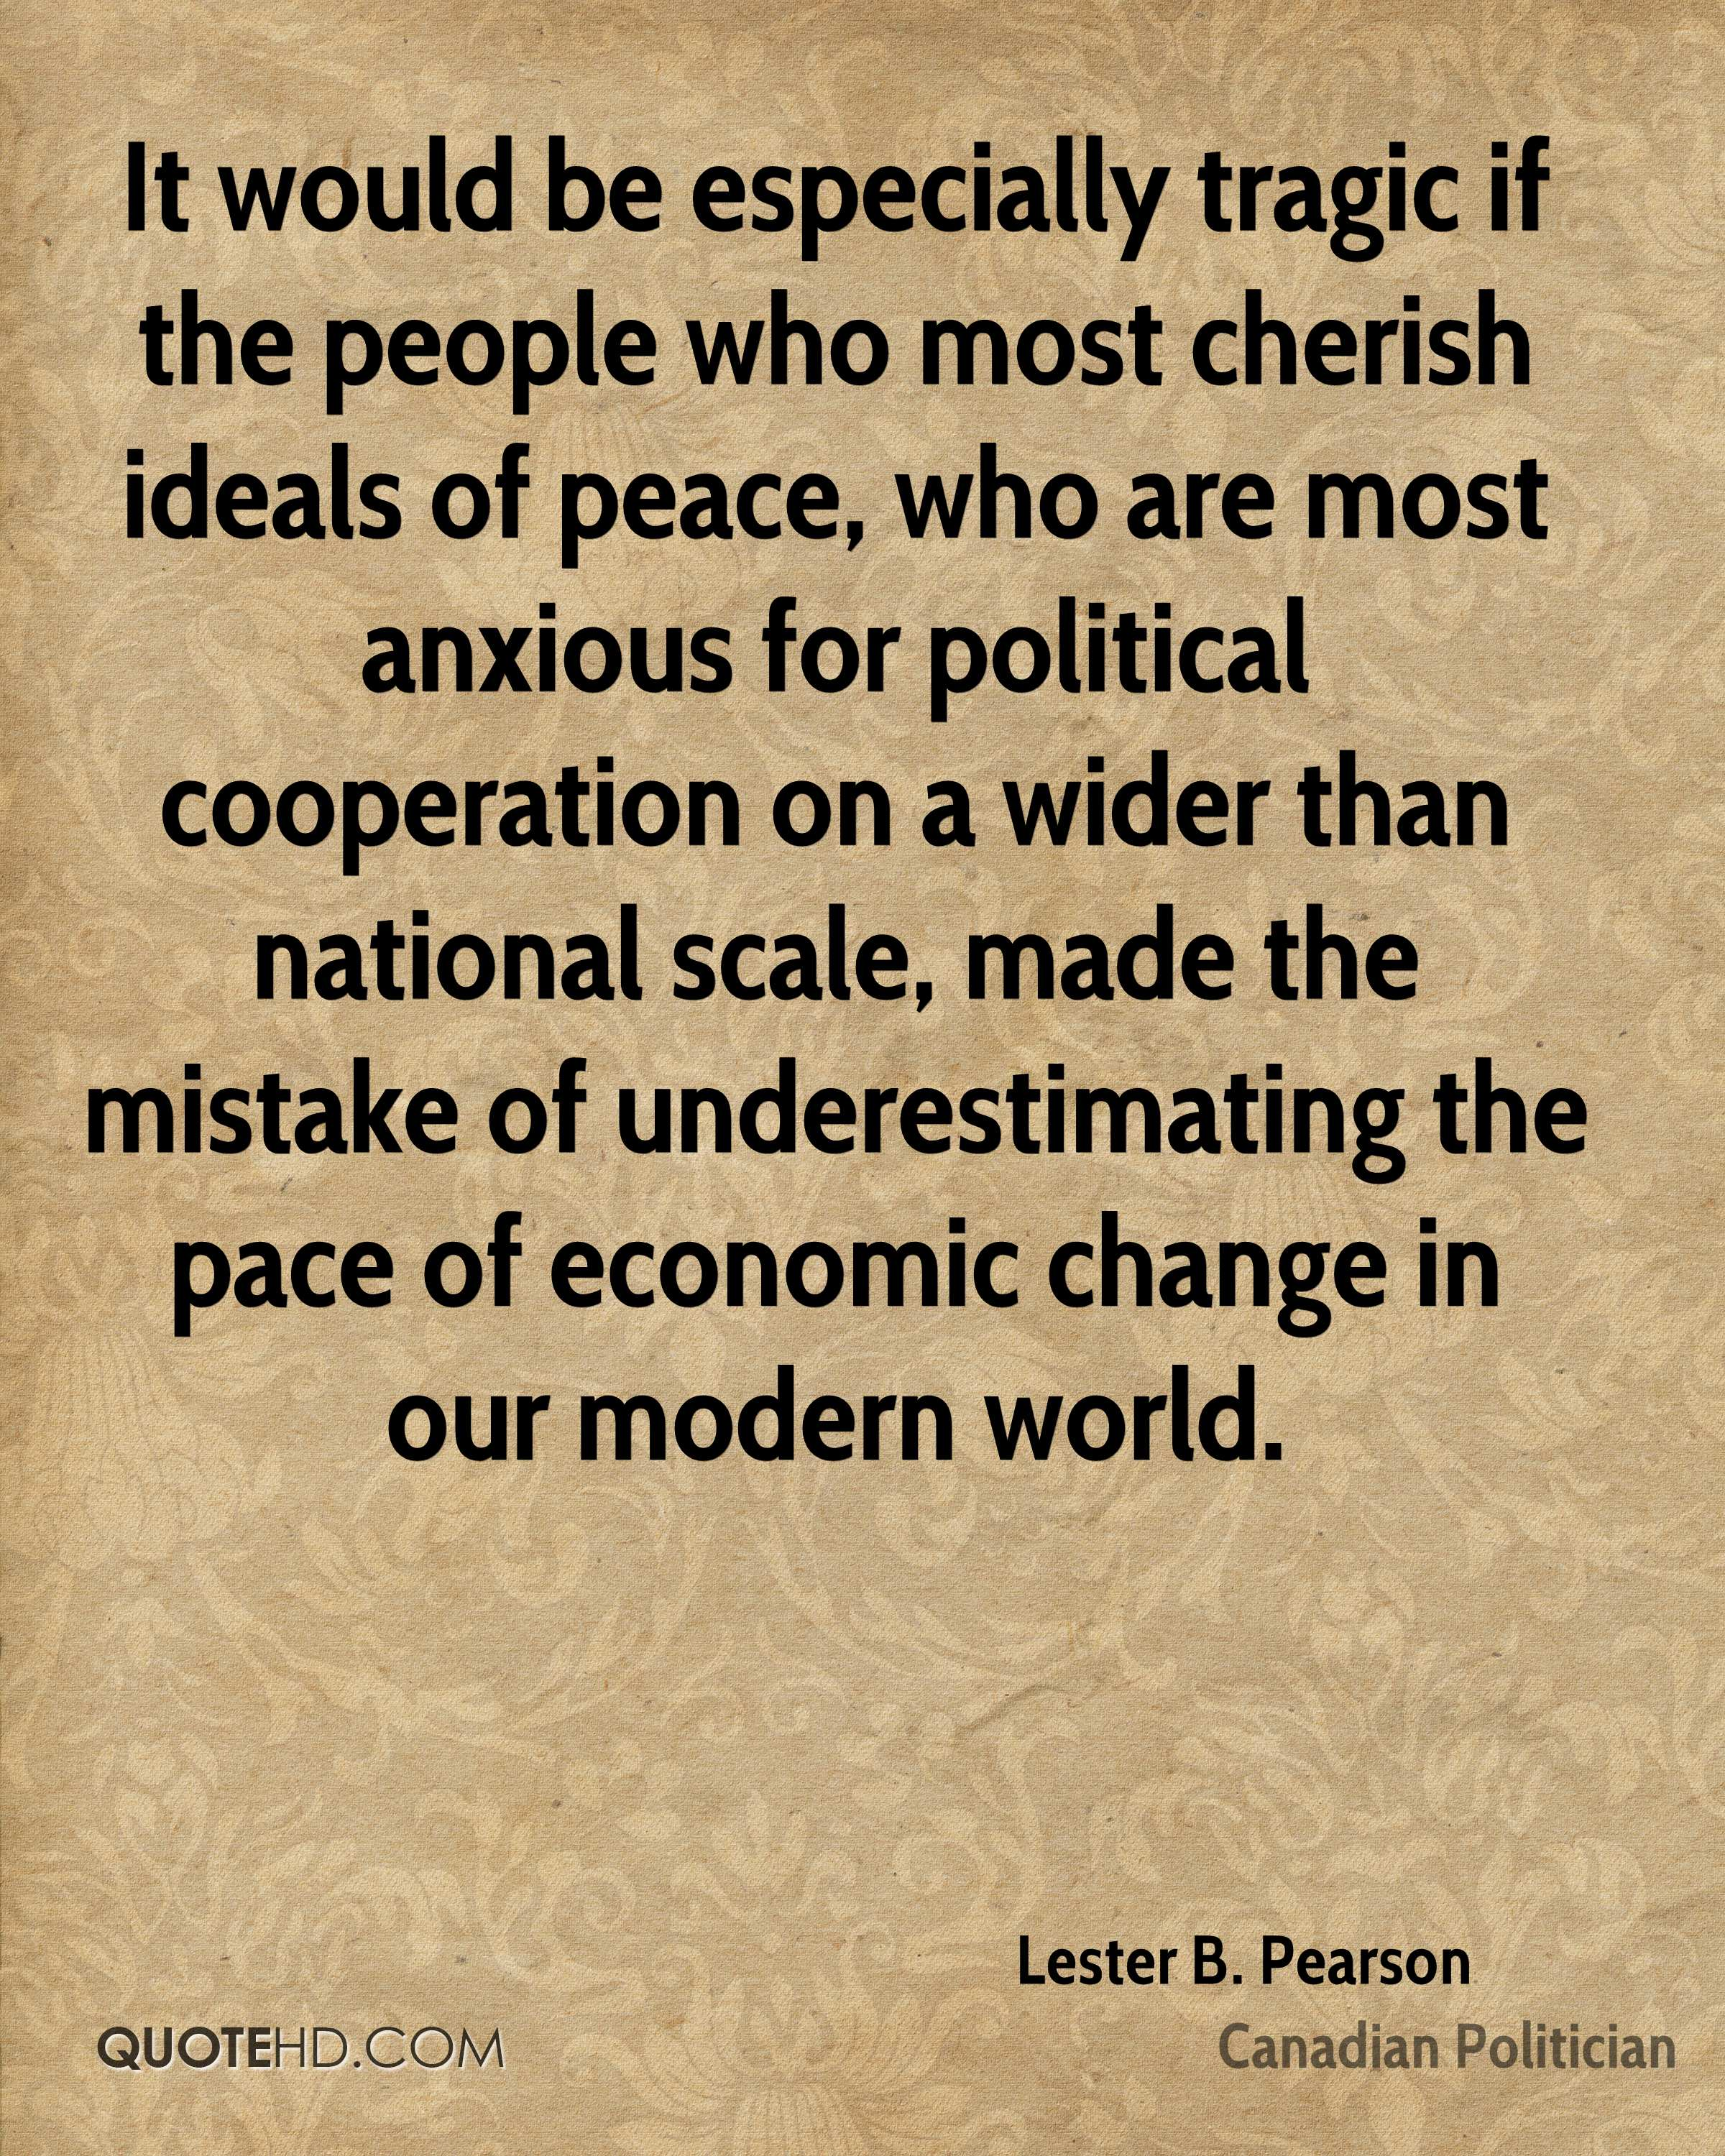 Lester B. Pearson Peace Quotes | QuoteHD